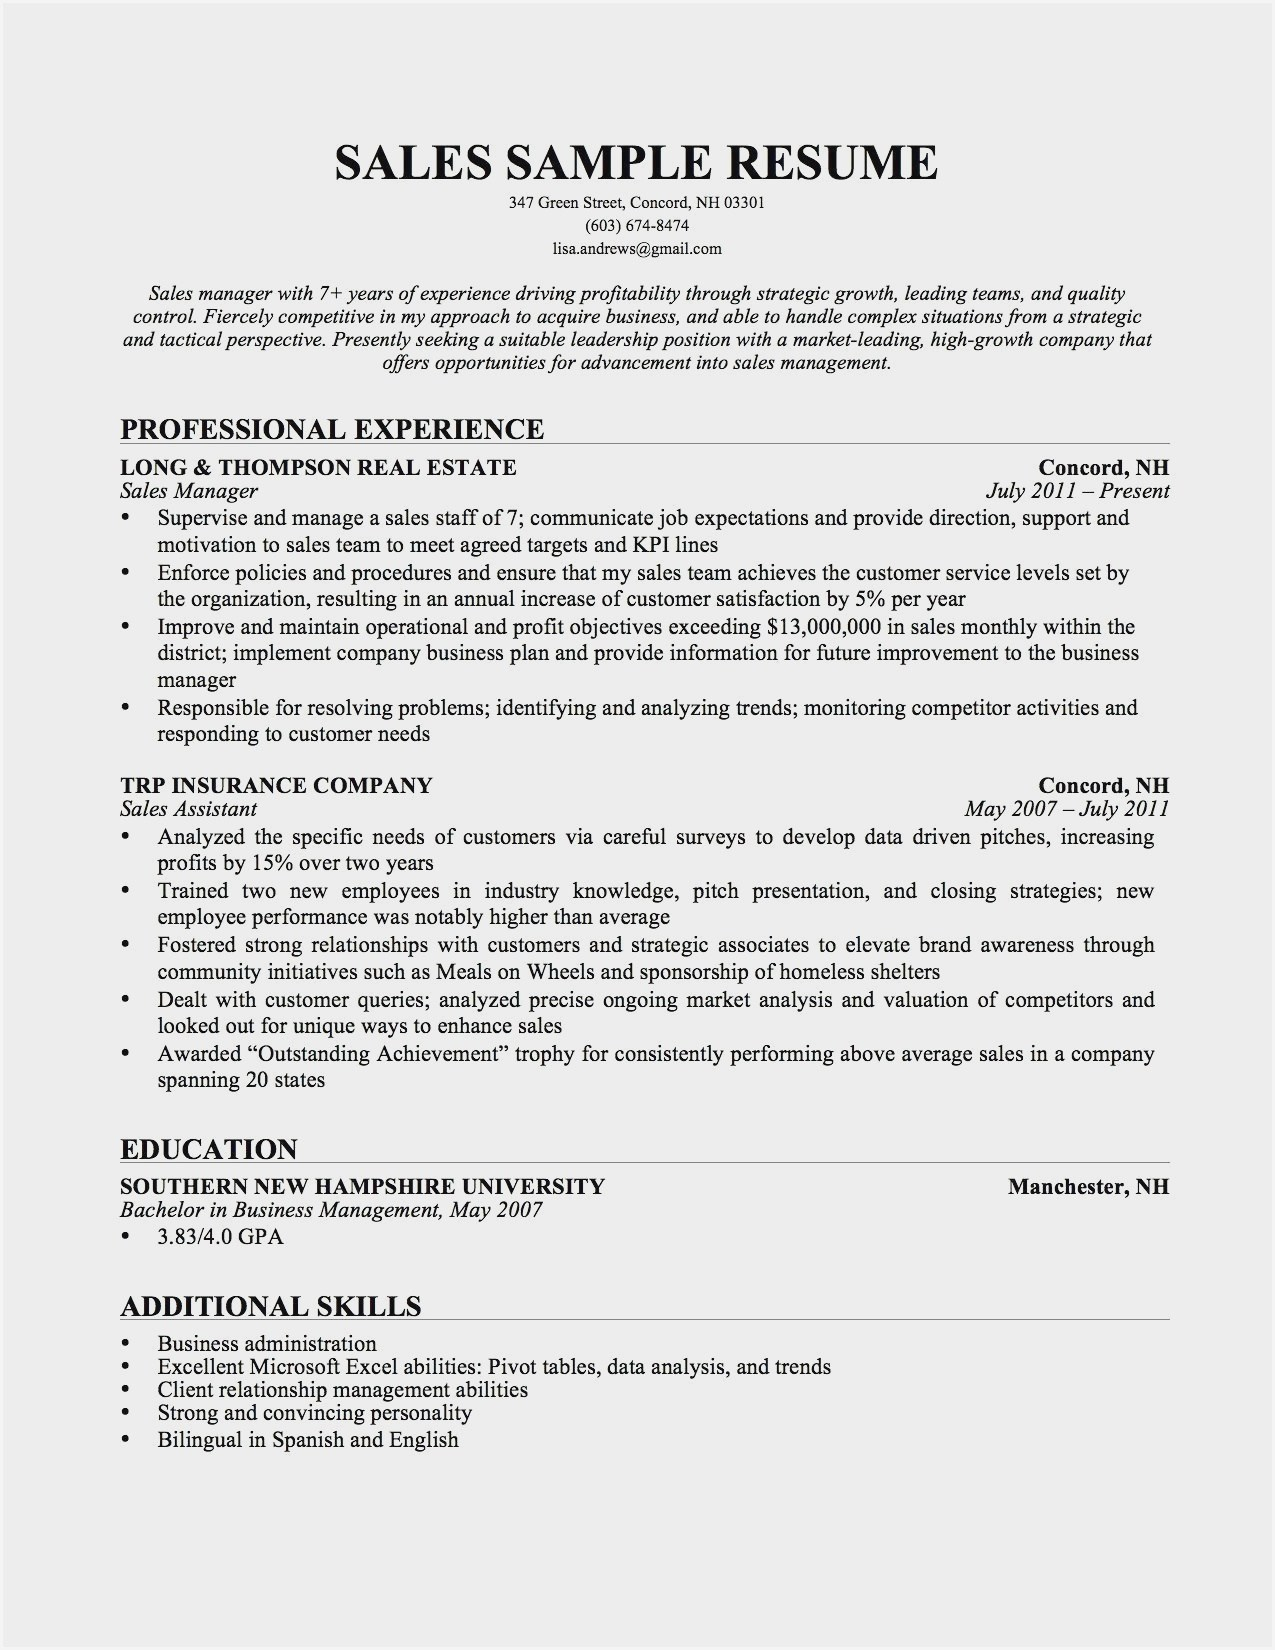 free healthcare administration resume samples sample business examples tamil teacher Resume Business Administration Resume Examples